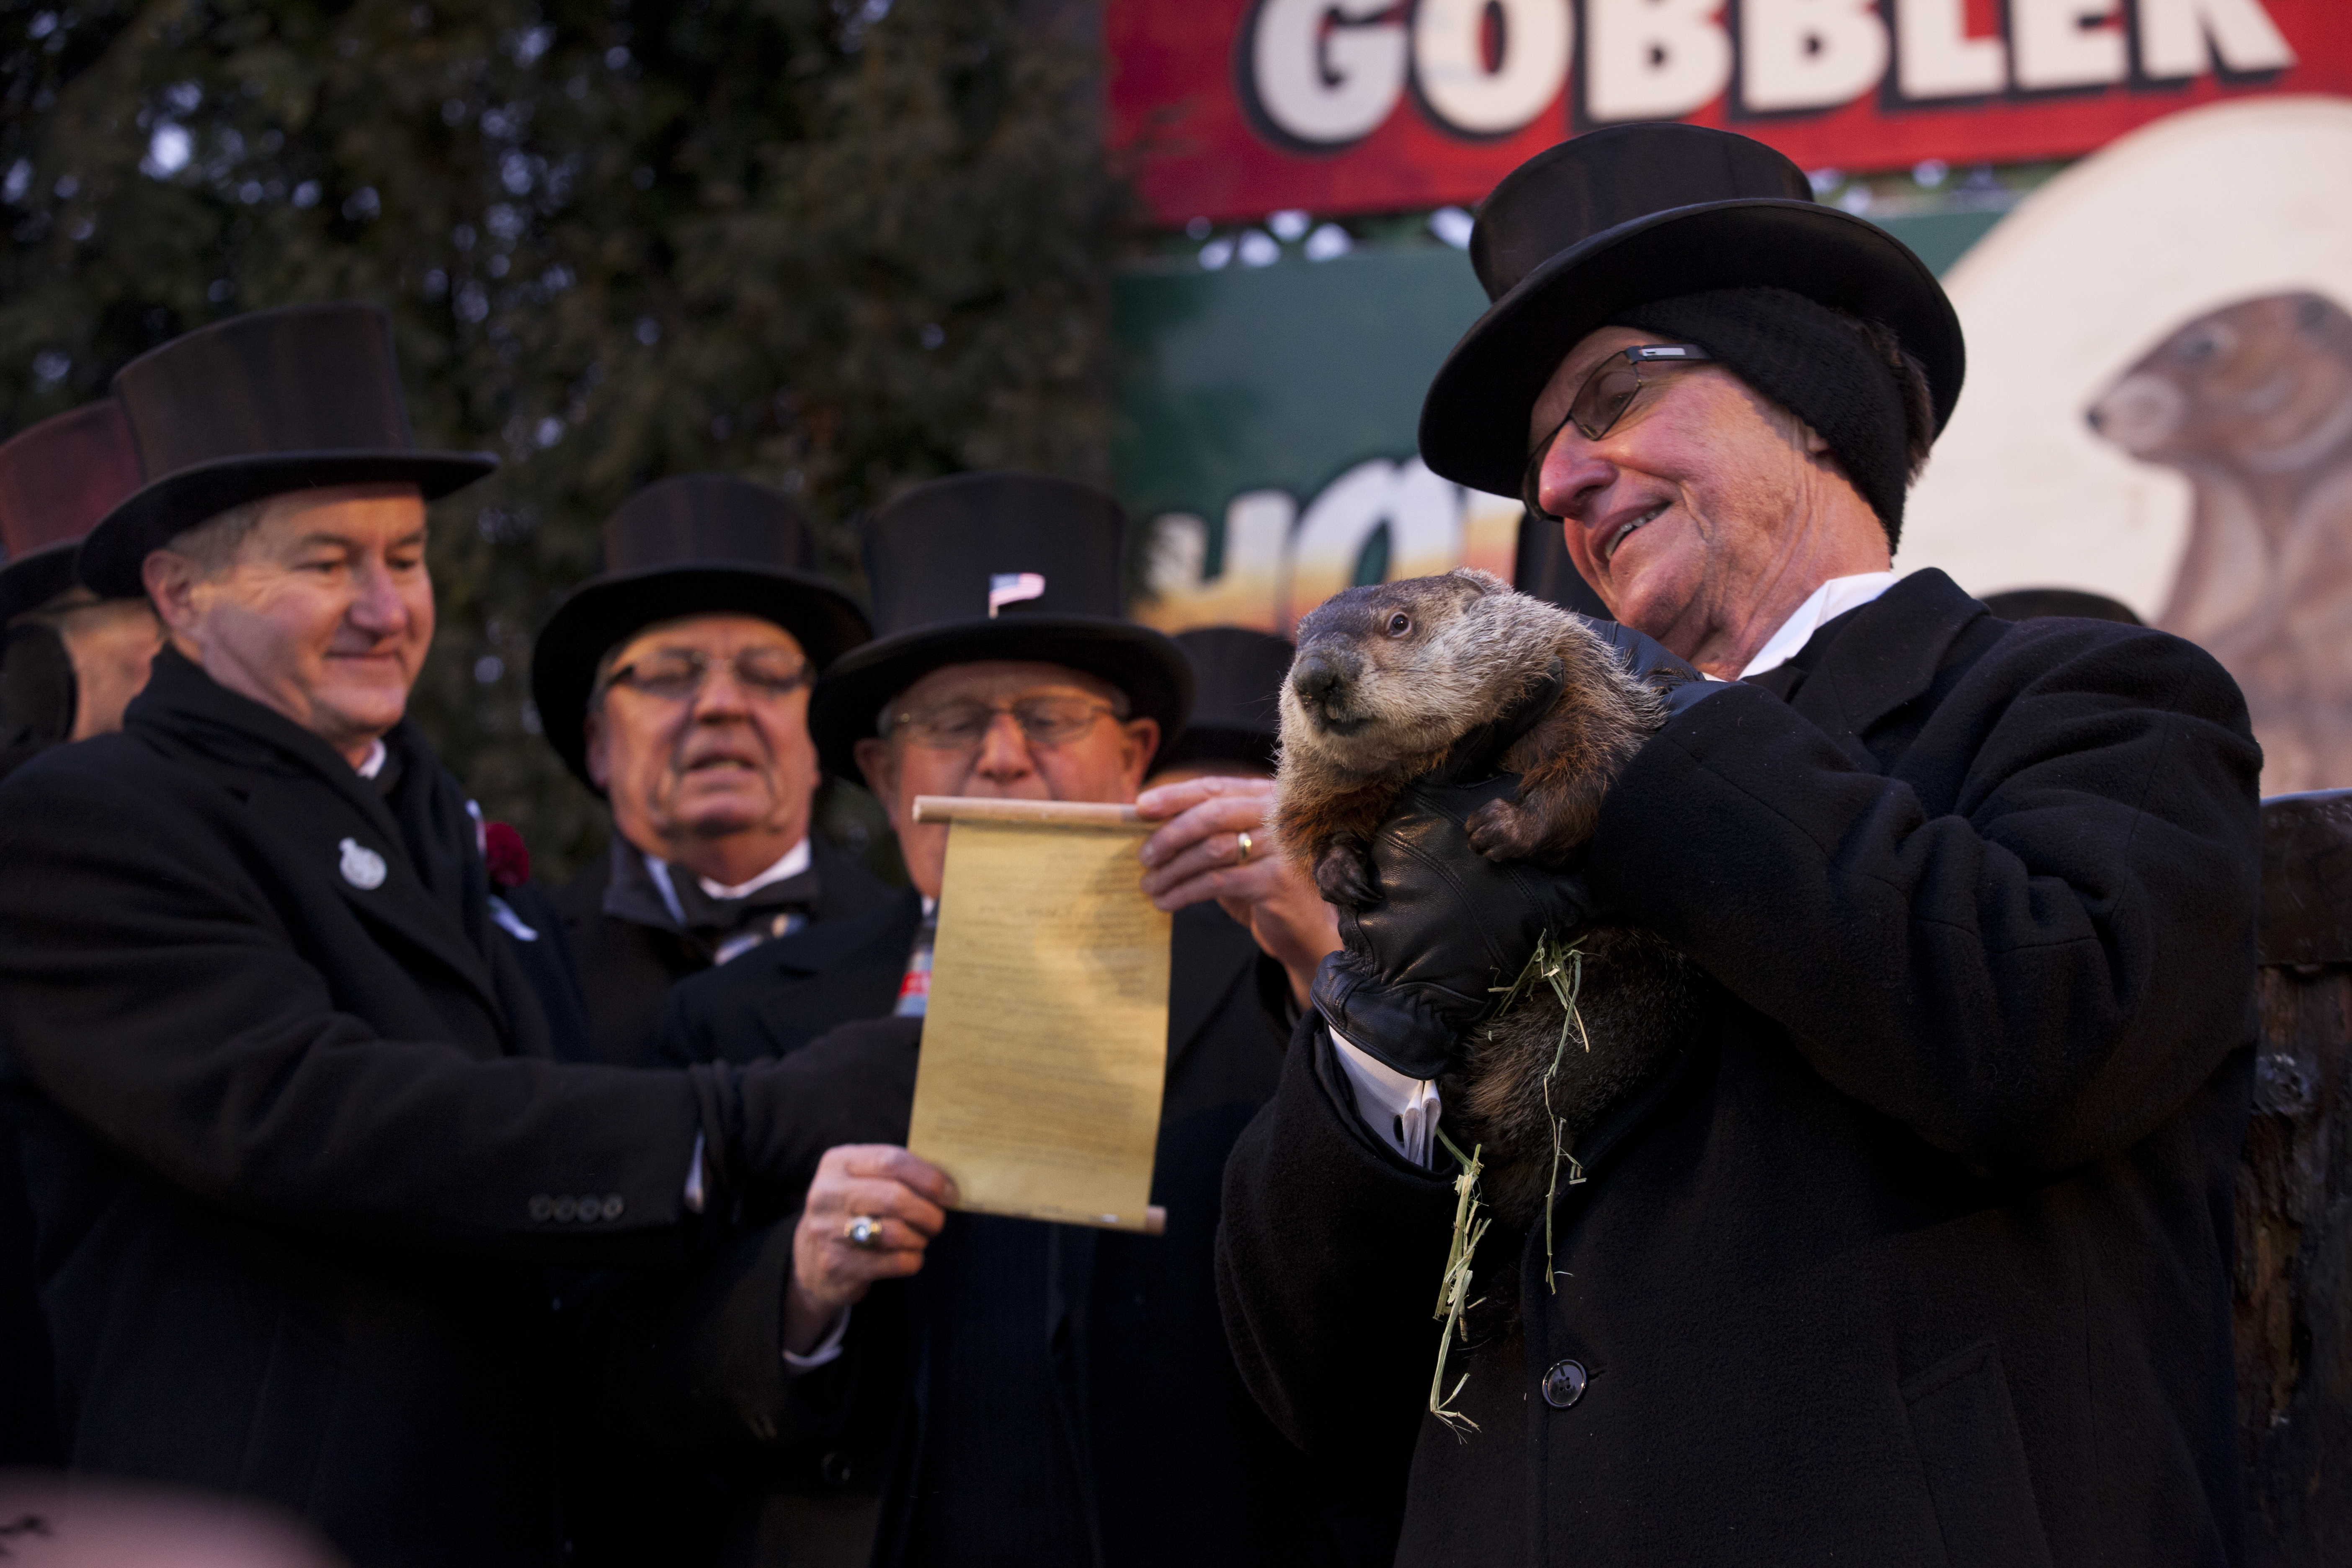 An image of the Groundhog Day celebration from 2013.